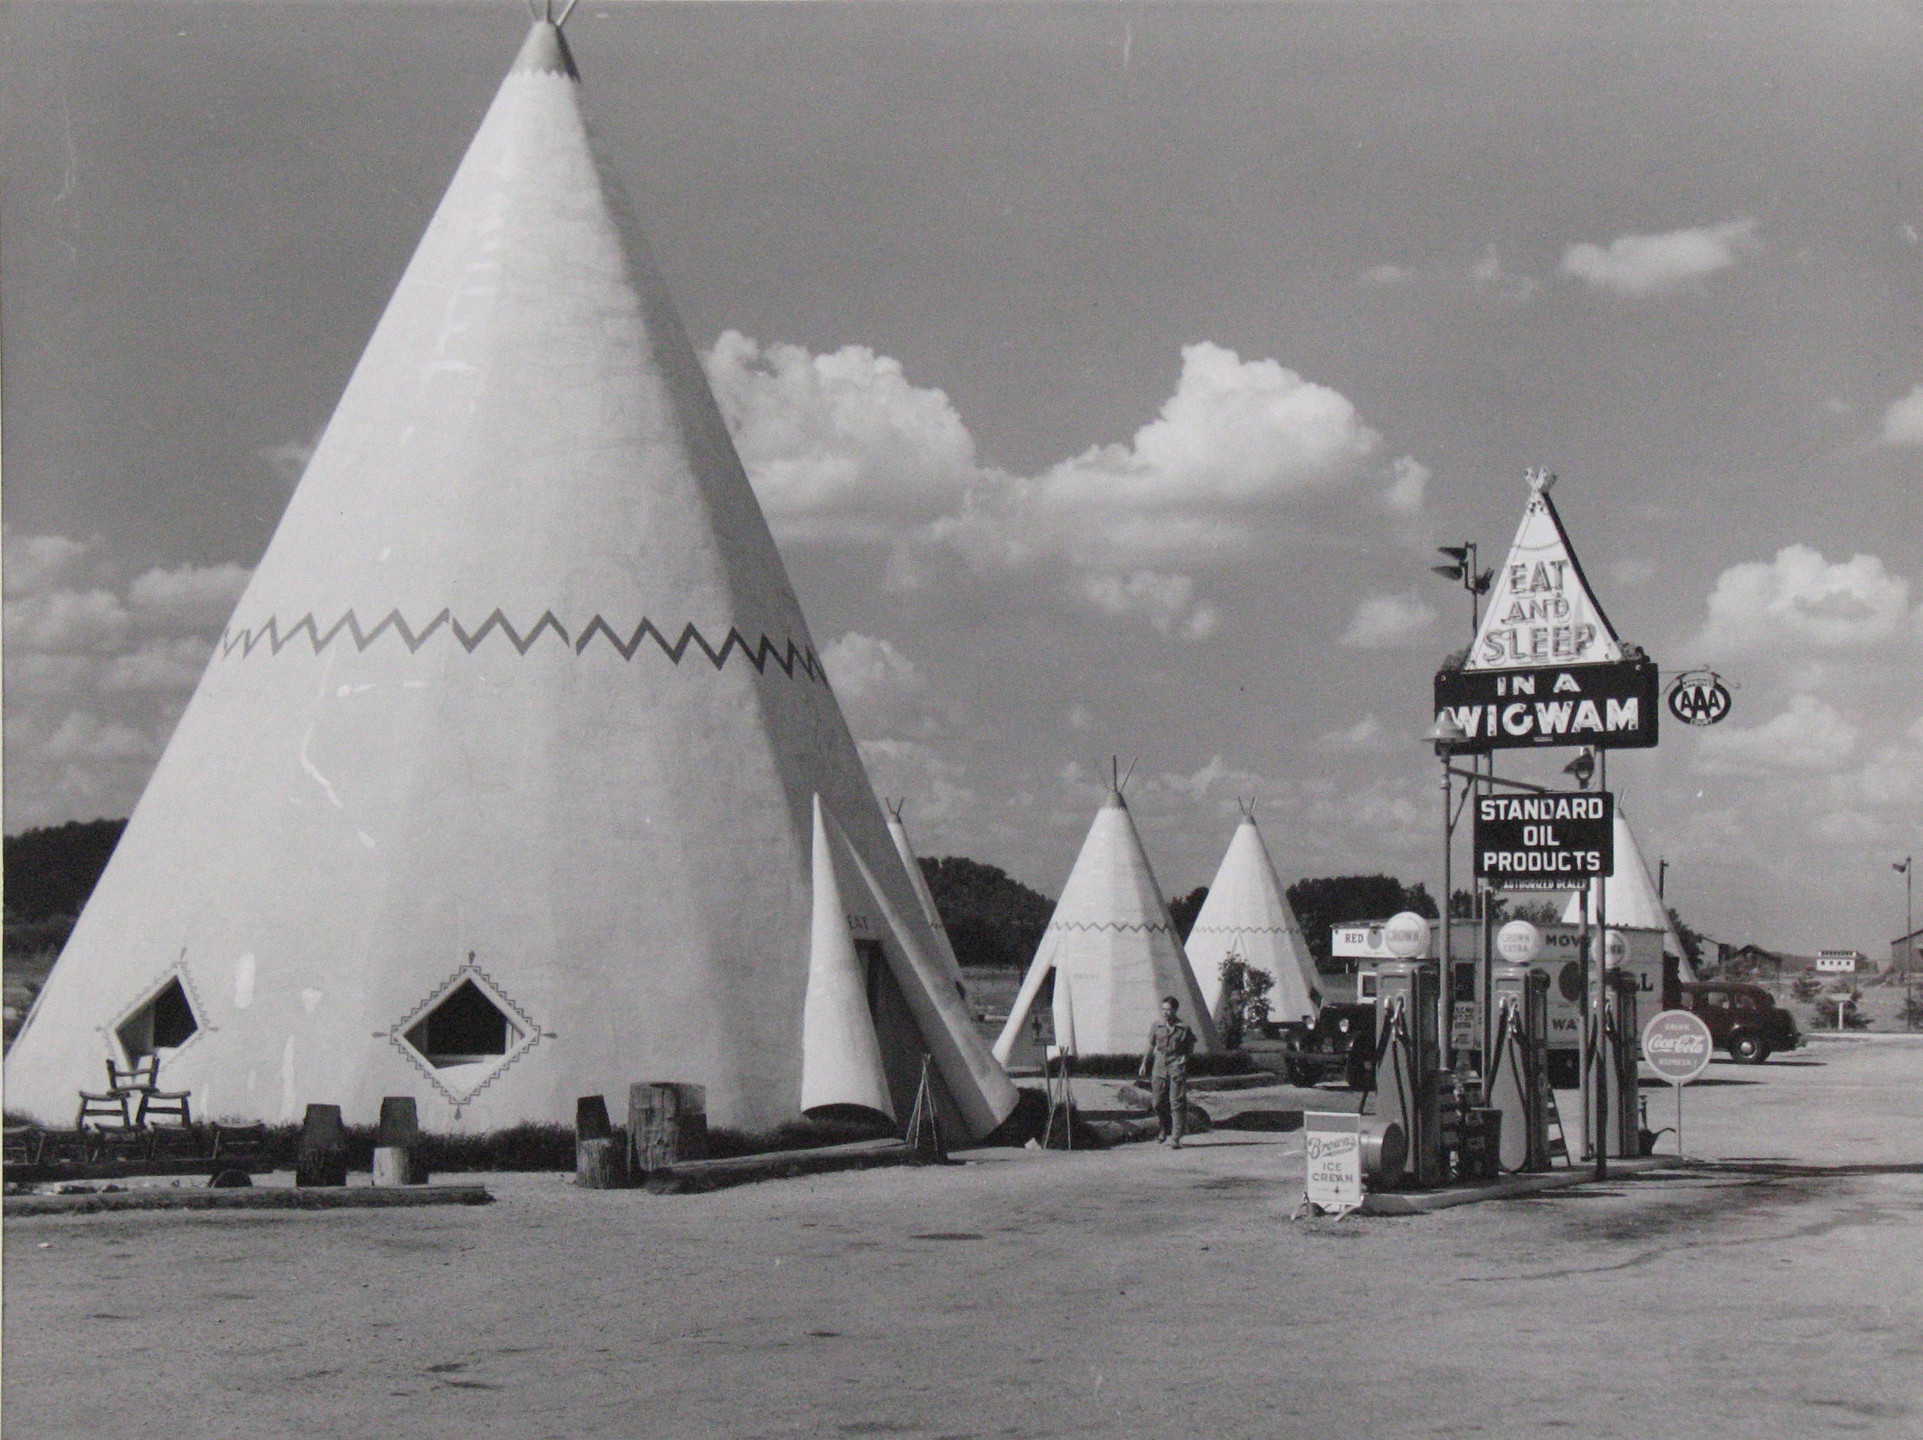 Marion Post Wolcott. Cabins Imitating the Indian Teepee for Tourists Along Highway South of Bardstown, Kentucky. 1940